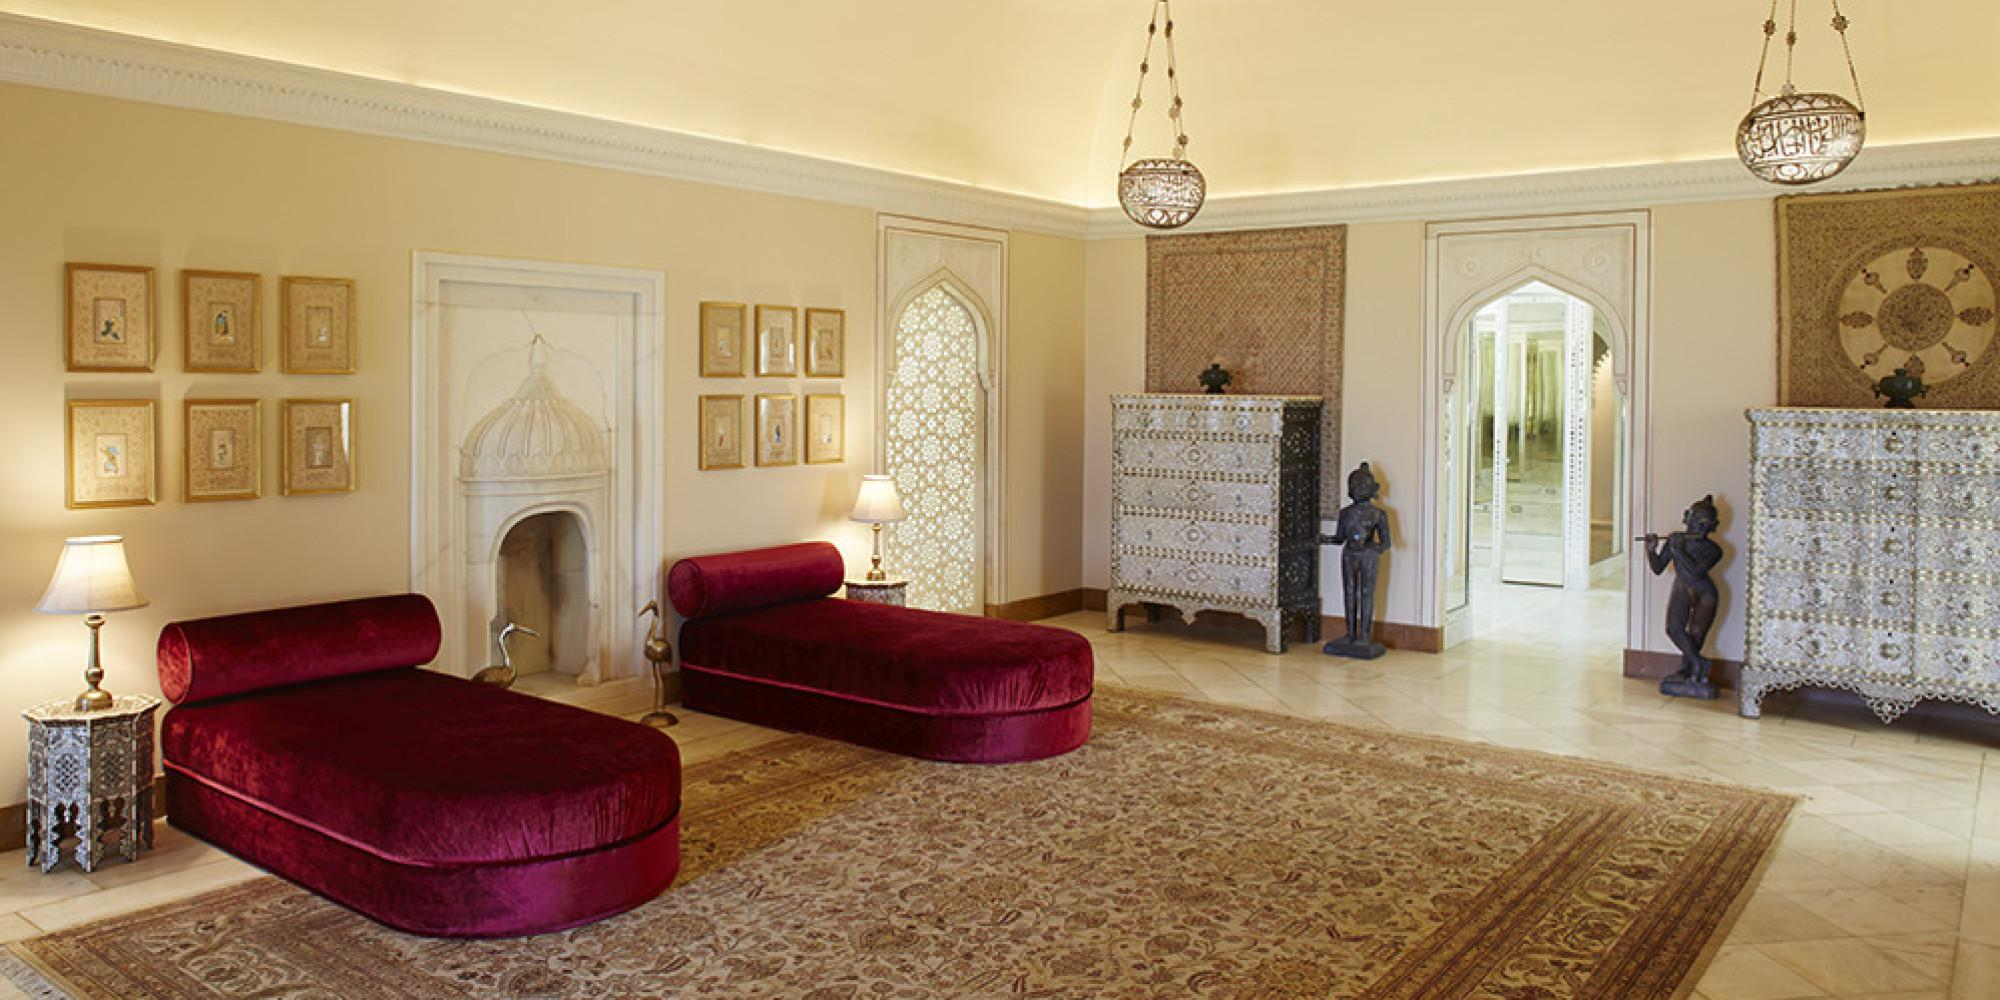 This Billionaire's Bedroom Is A Treasure Trove Of Islamic Art